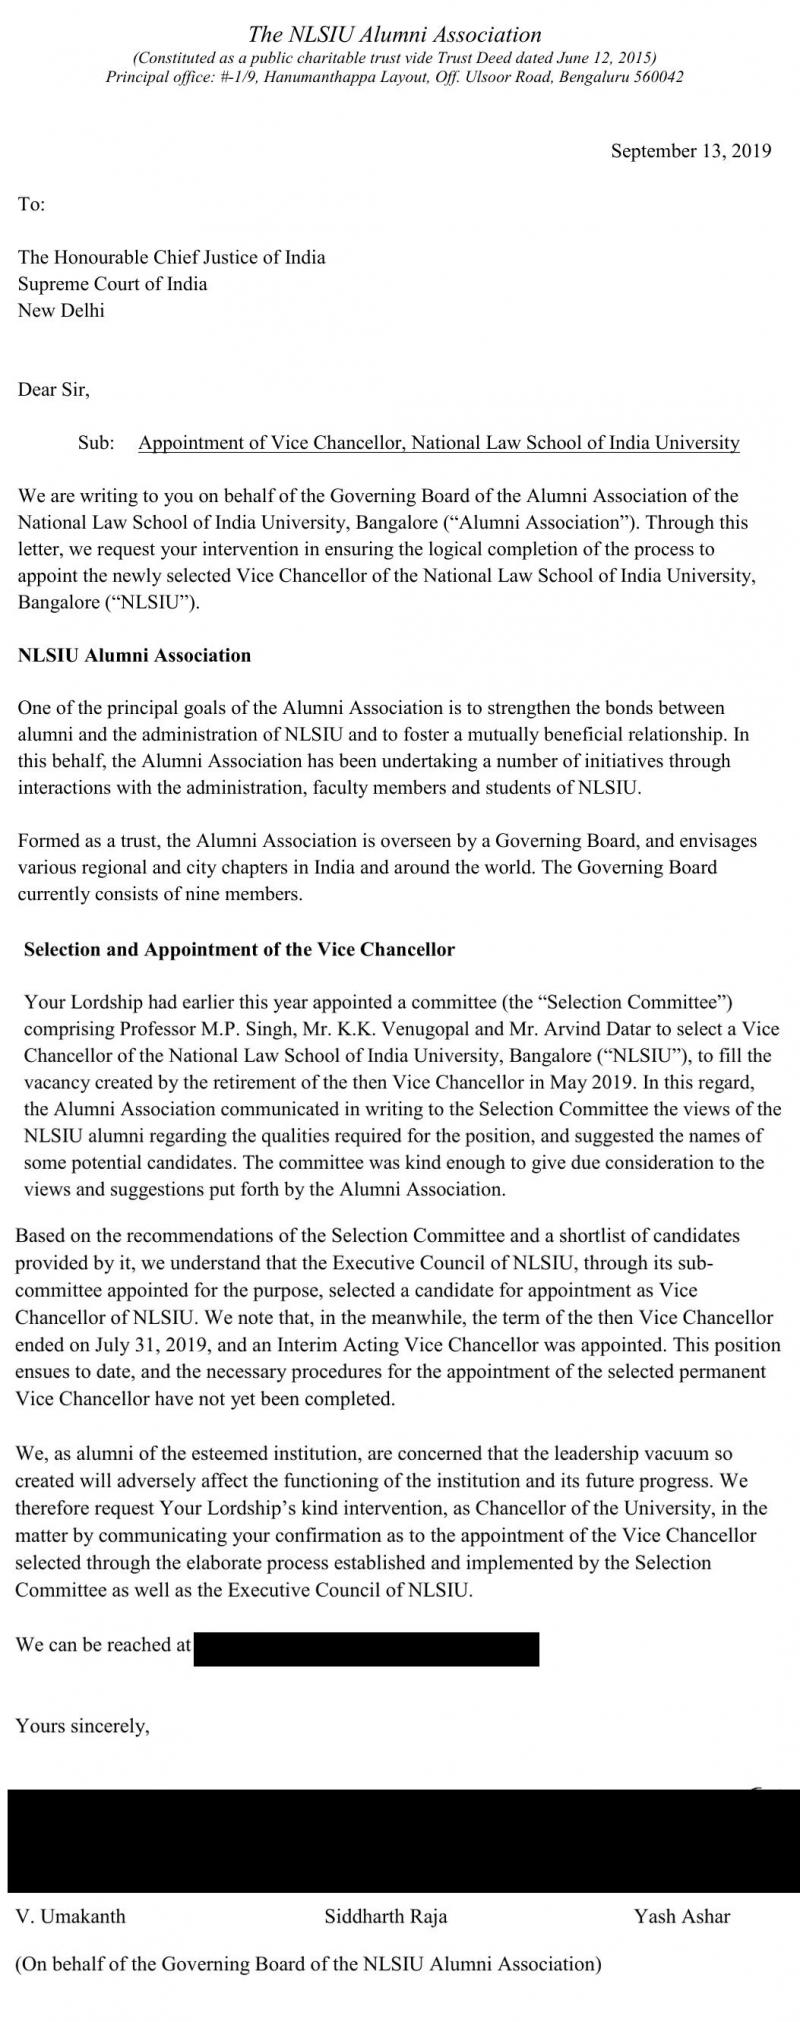 Letter by NLSIU alum association